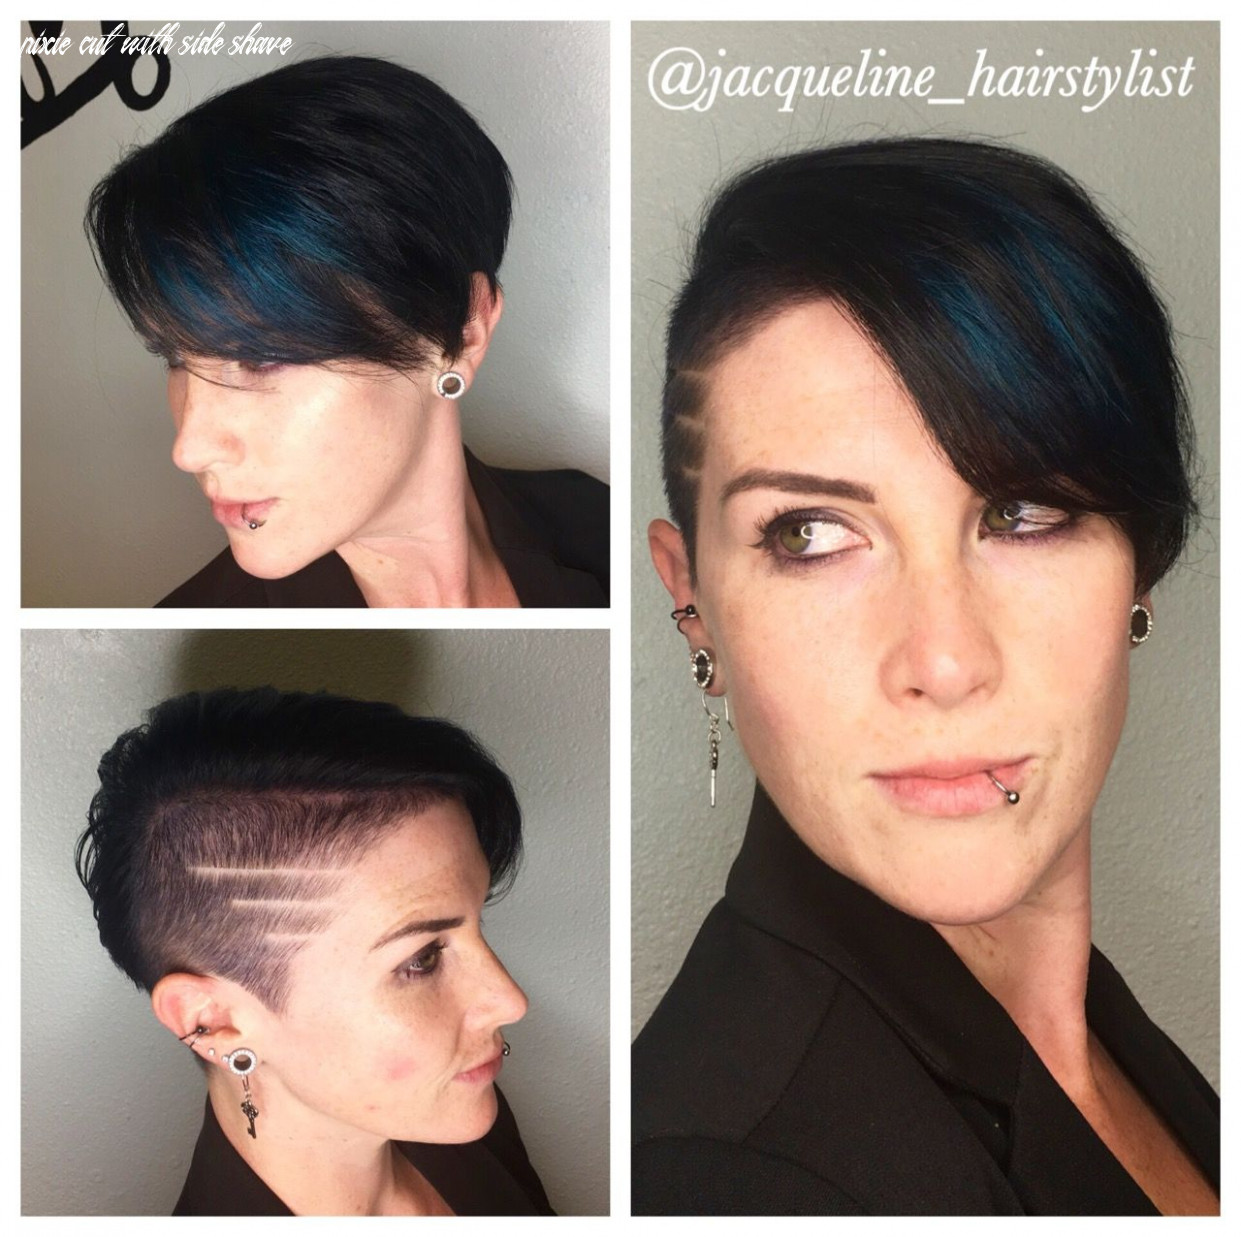 Pin on jacqueline hairstylist pixie cut with side shave